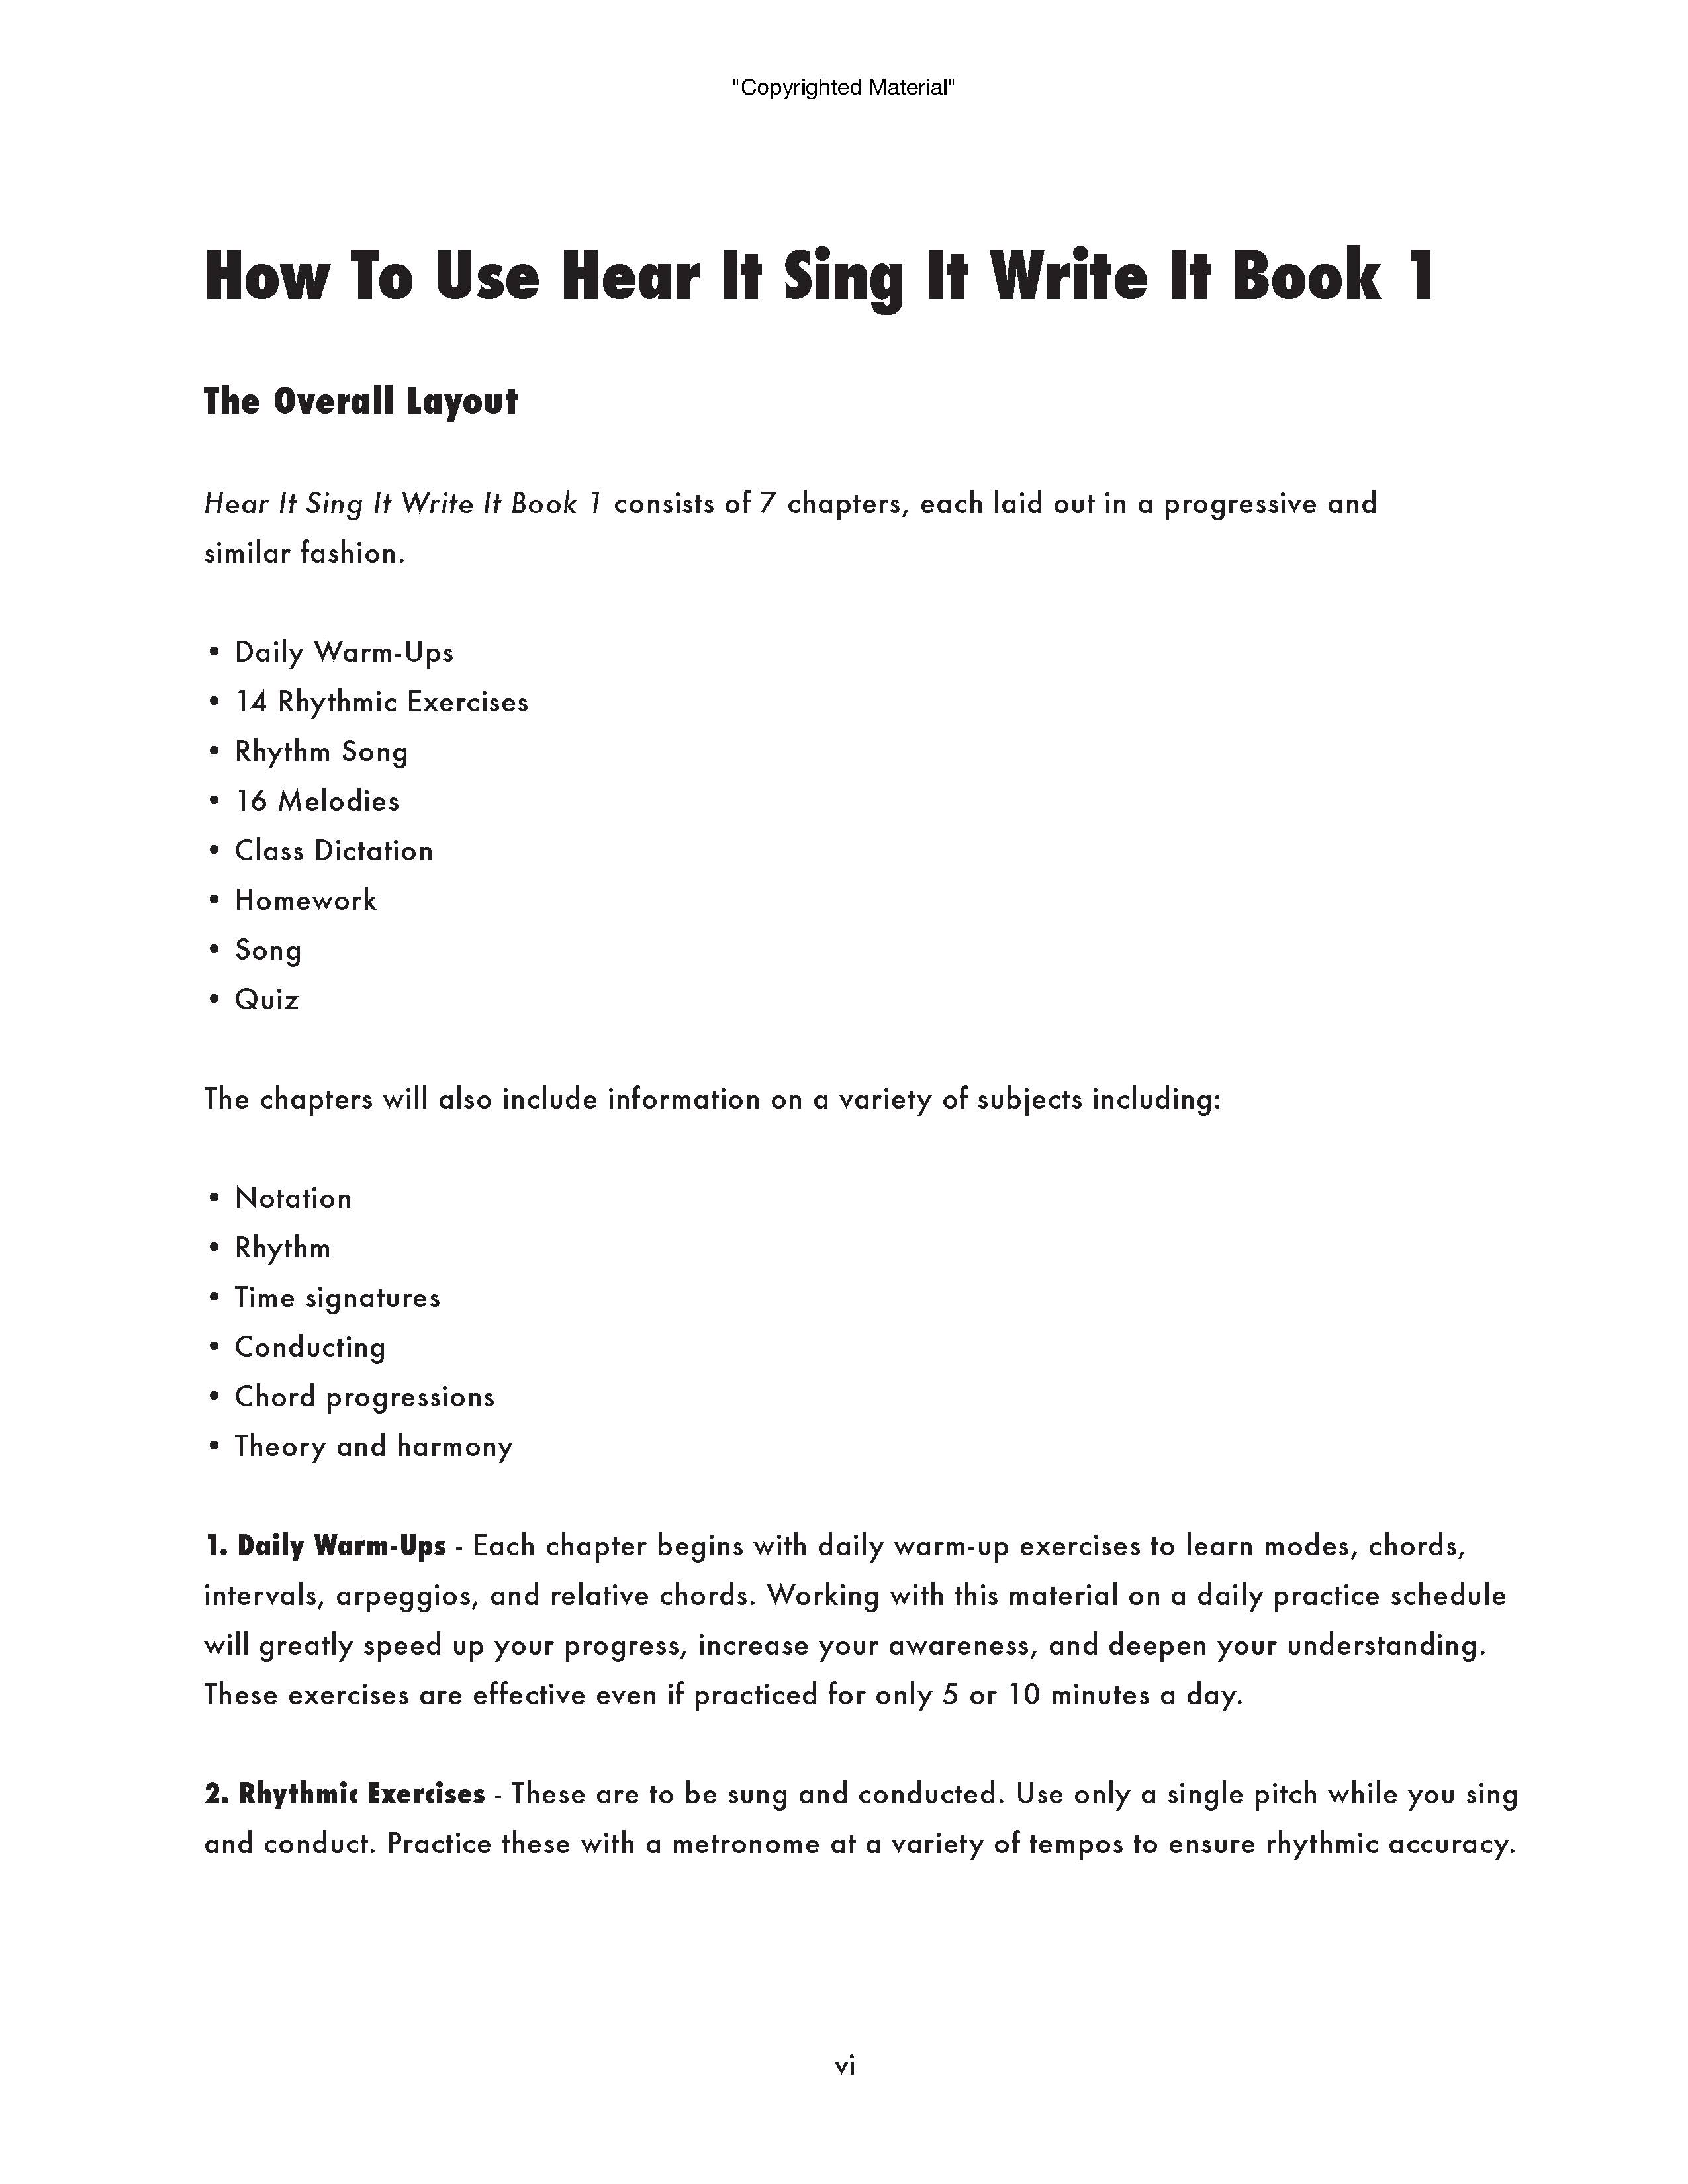 Hear it sing it write it page vi how to use this book hexwebz Images